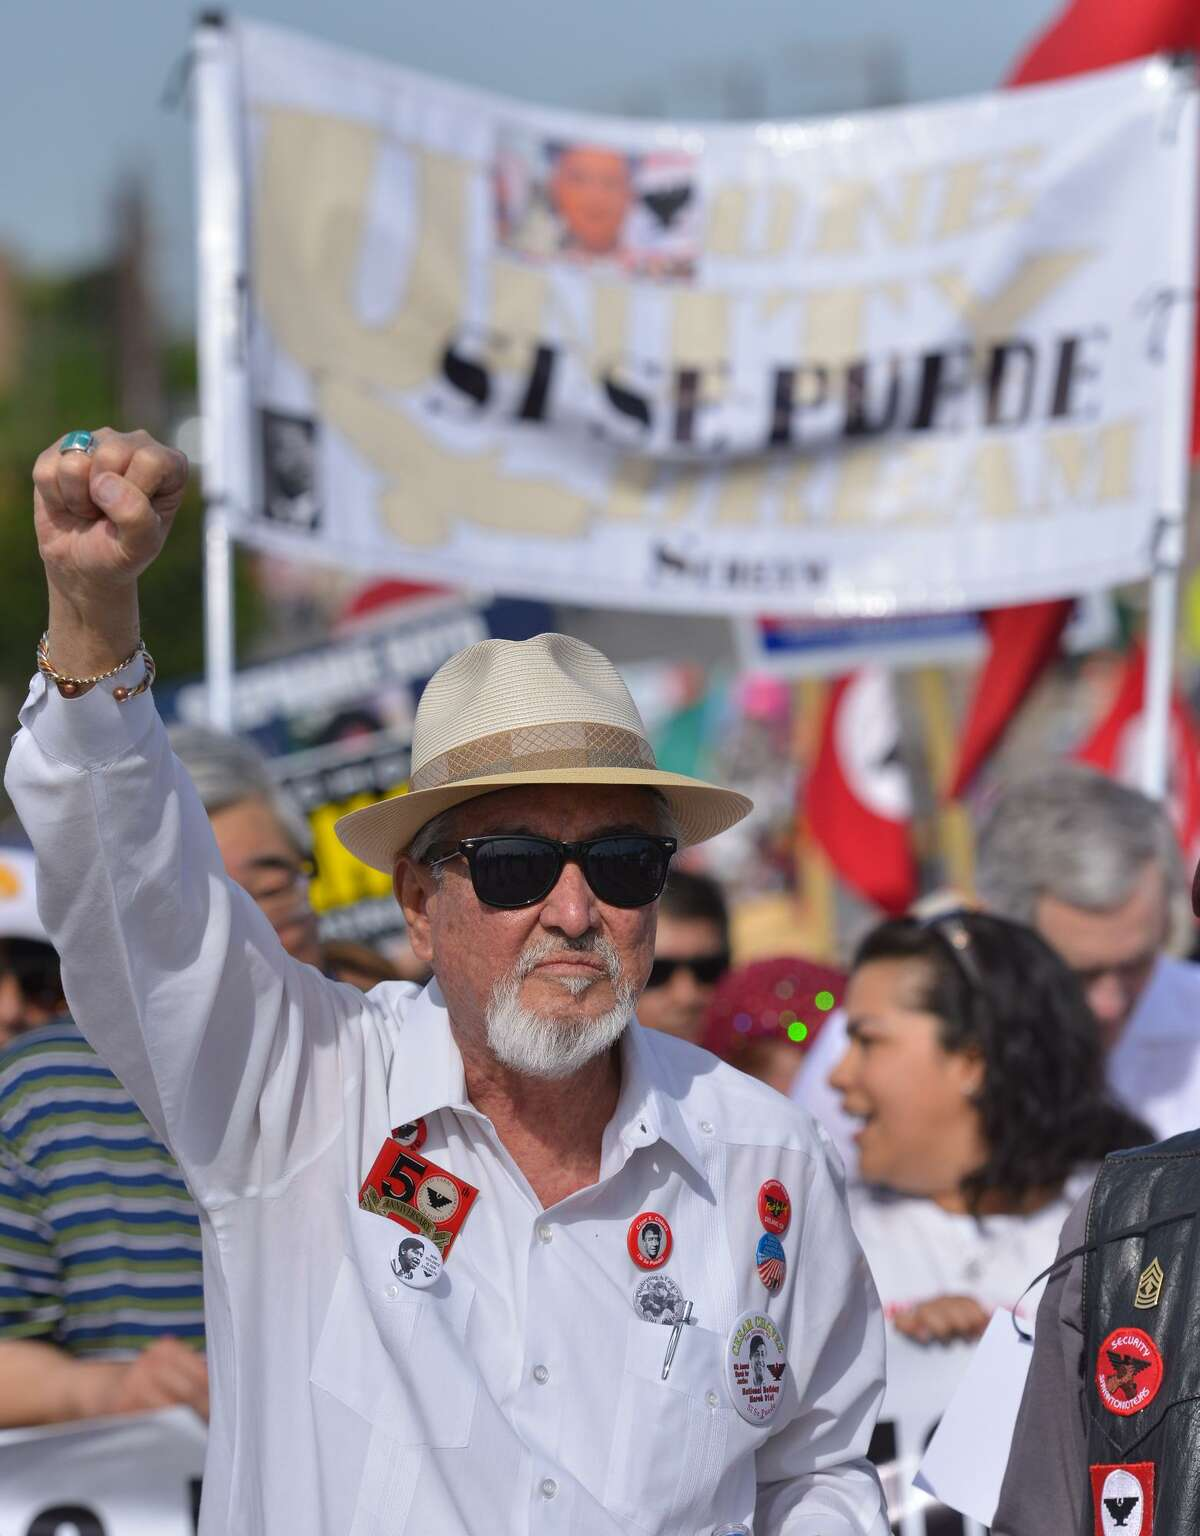 Cesar Chavez March organizer Jaime Martinez chants while crossing the Guadalupe St. bridge during the march Saturday.